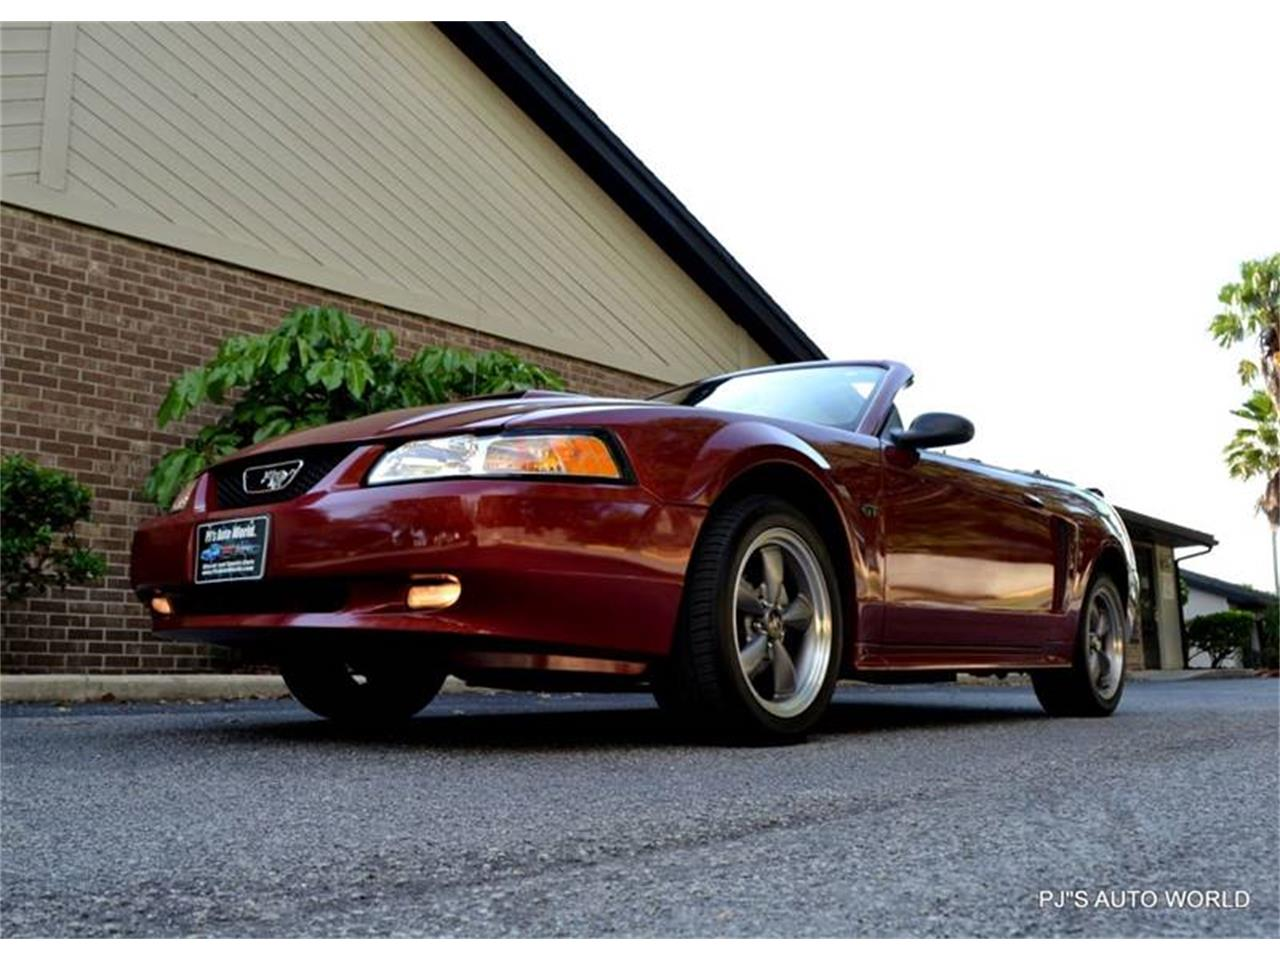 Large Picture of 2003 Ford Mustang located in Florida - $10,900.00 Offered by PJ's Auto World - LEYO